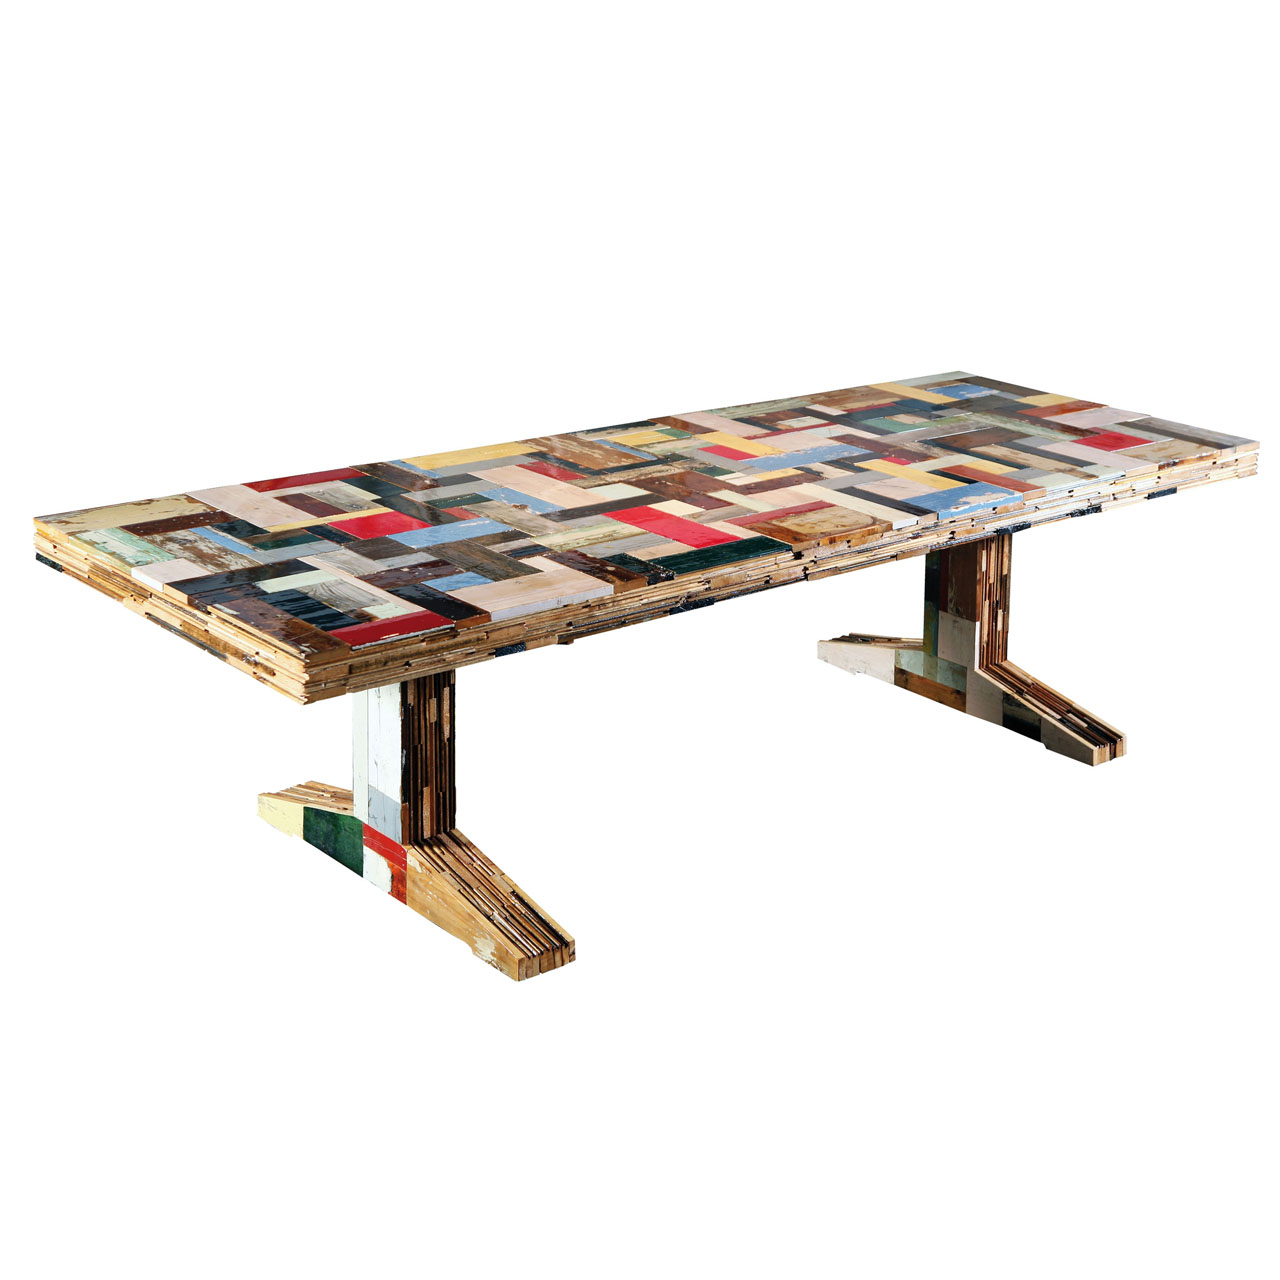 Waste Table Scrapwood by Piet Hein Eek